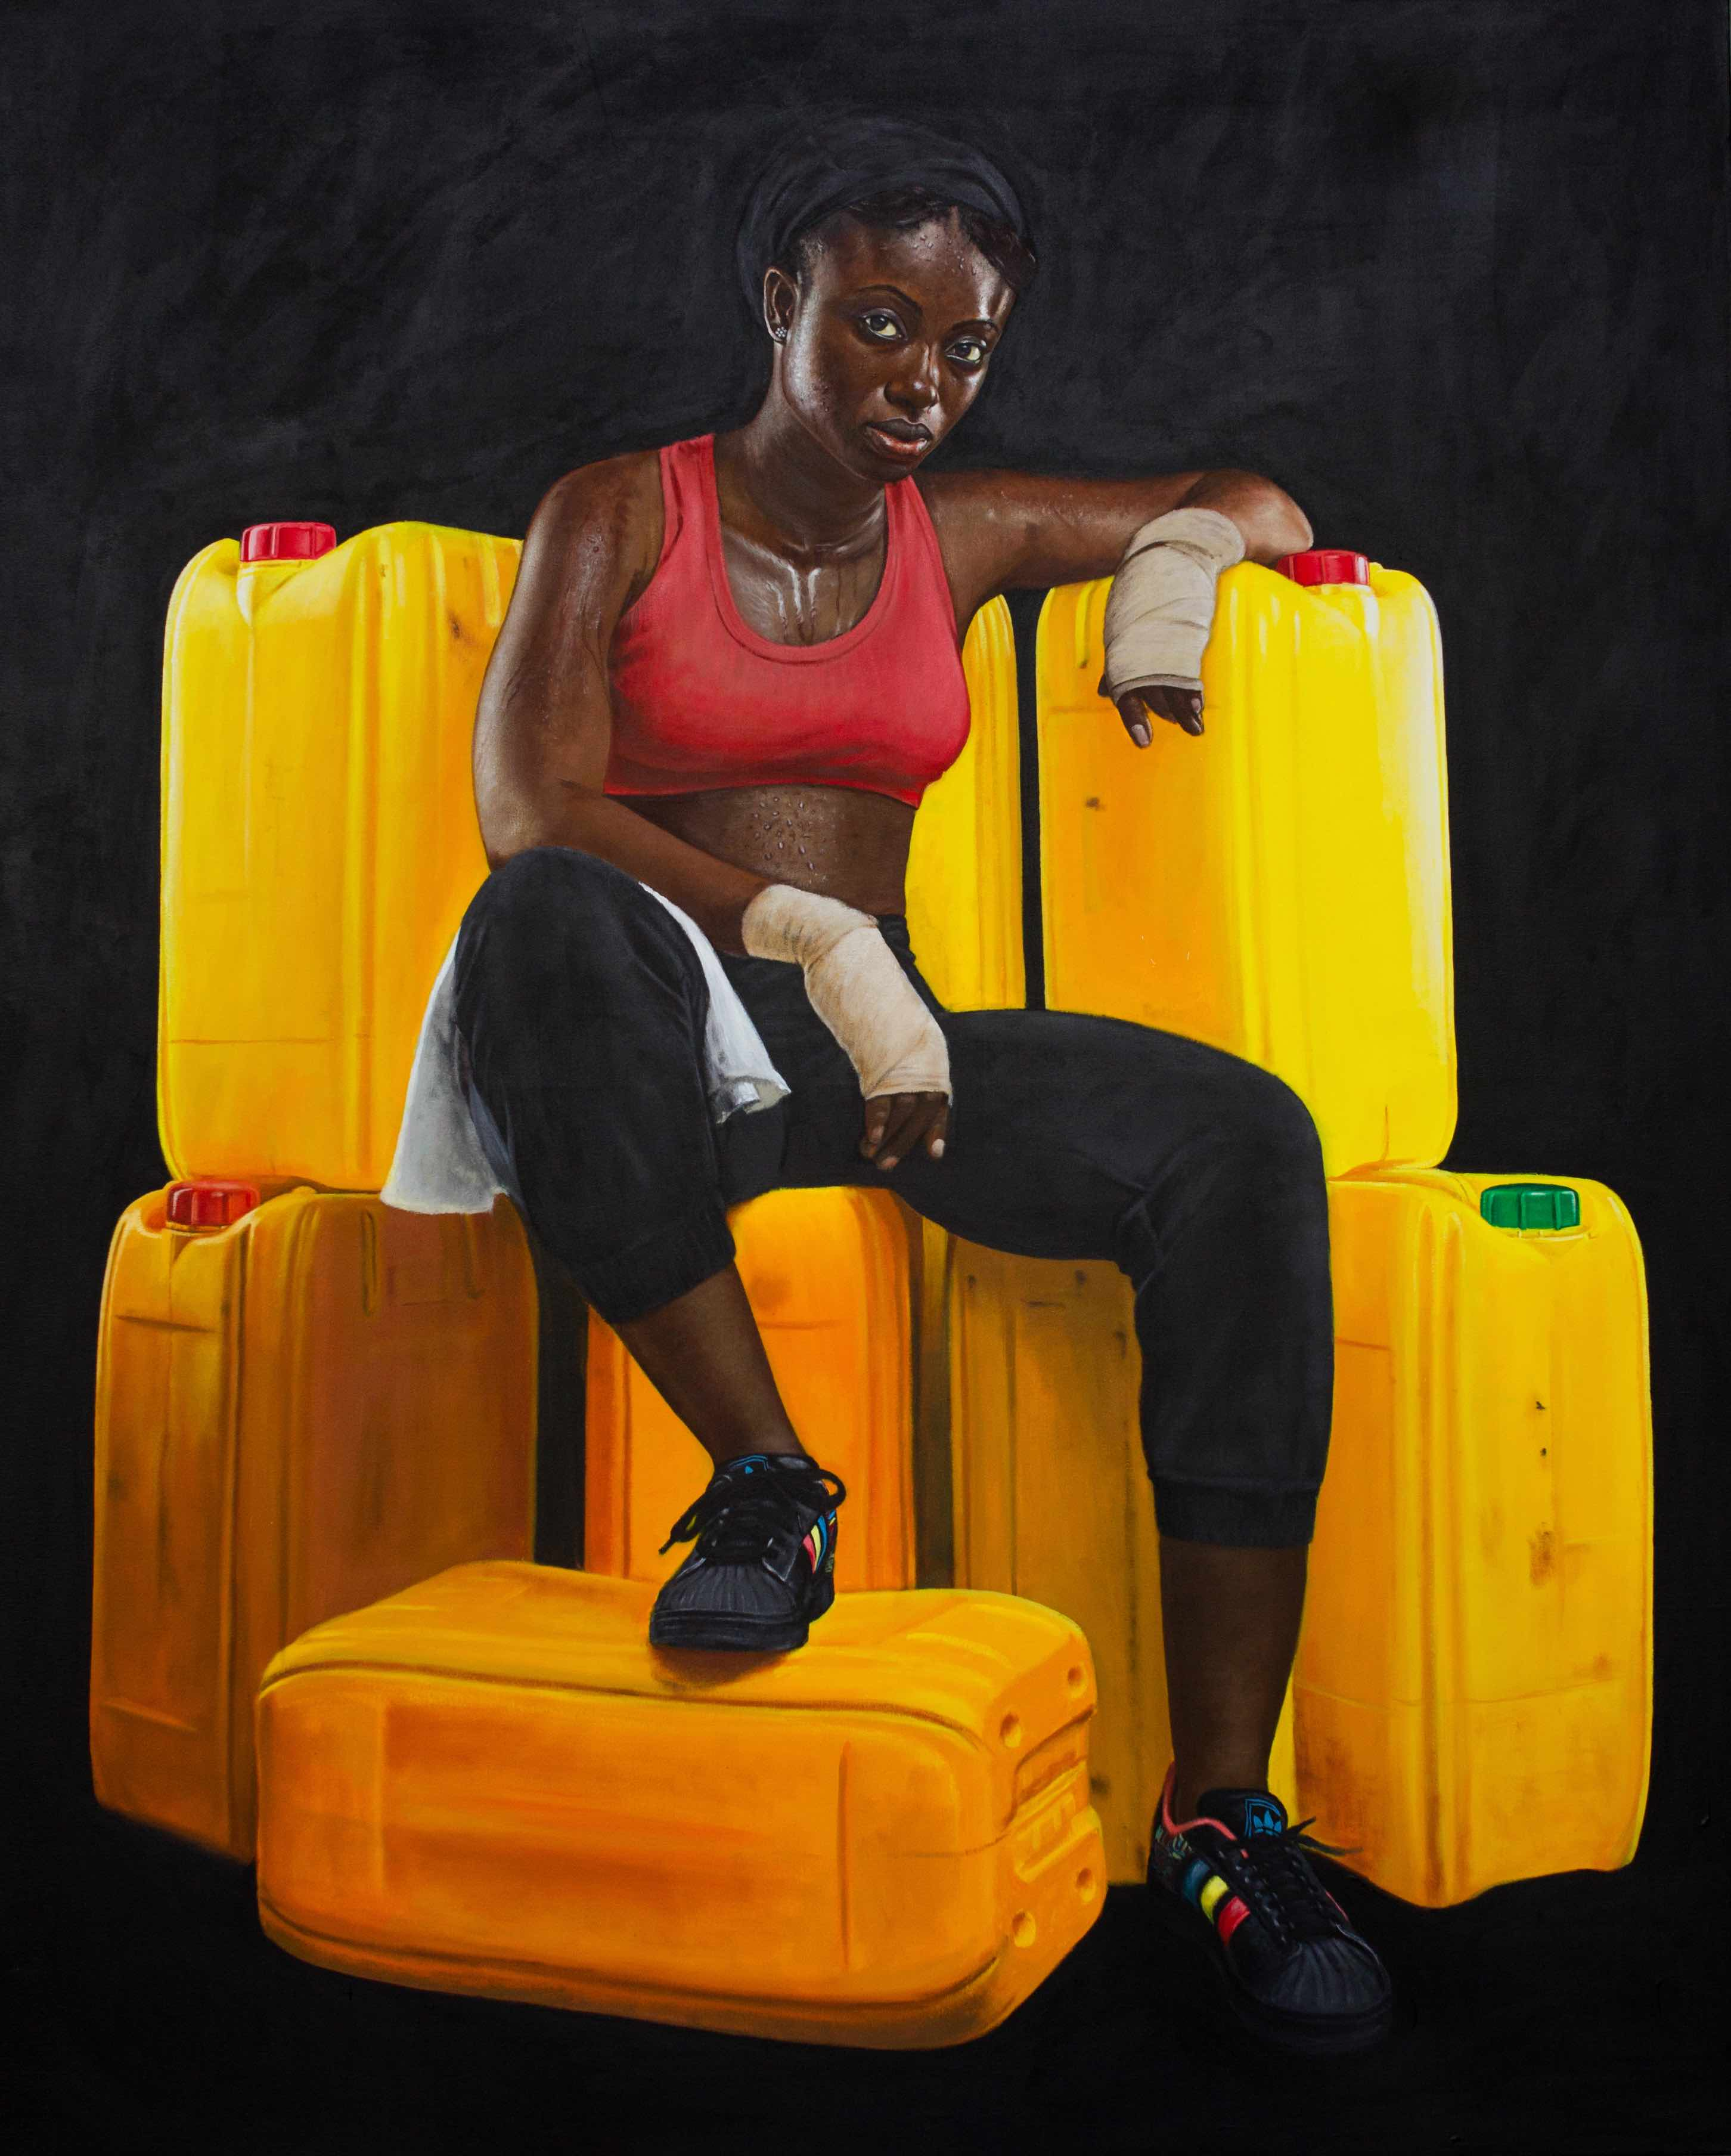 Jeremiah Quarshie, Franklina, Yellow is the Colour of Water, 2016, Acrylic on canvas, 152 x 122 cm / 60 x 48 in, Courtesy Gallery 1957